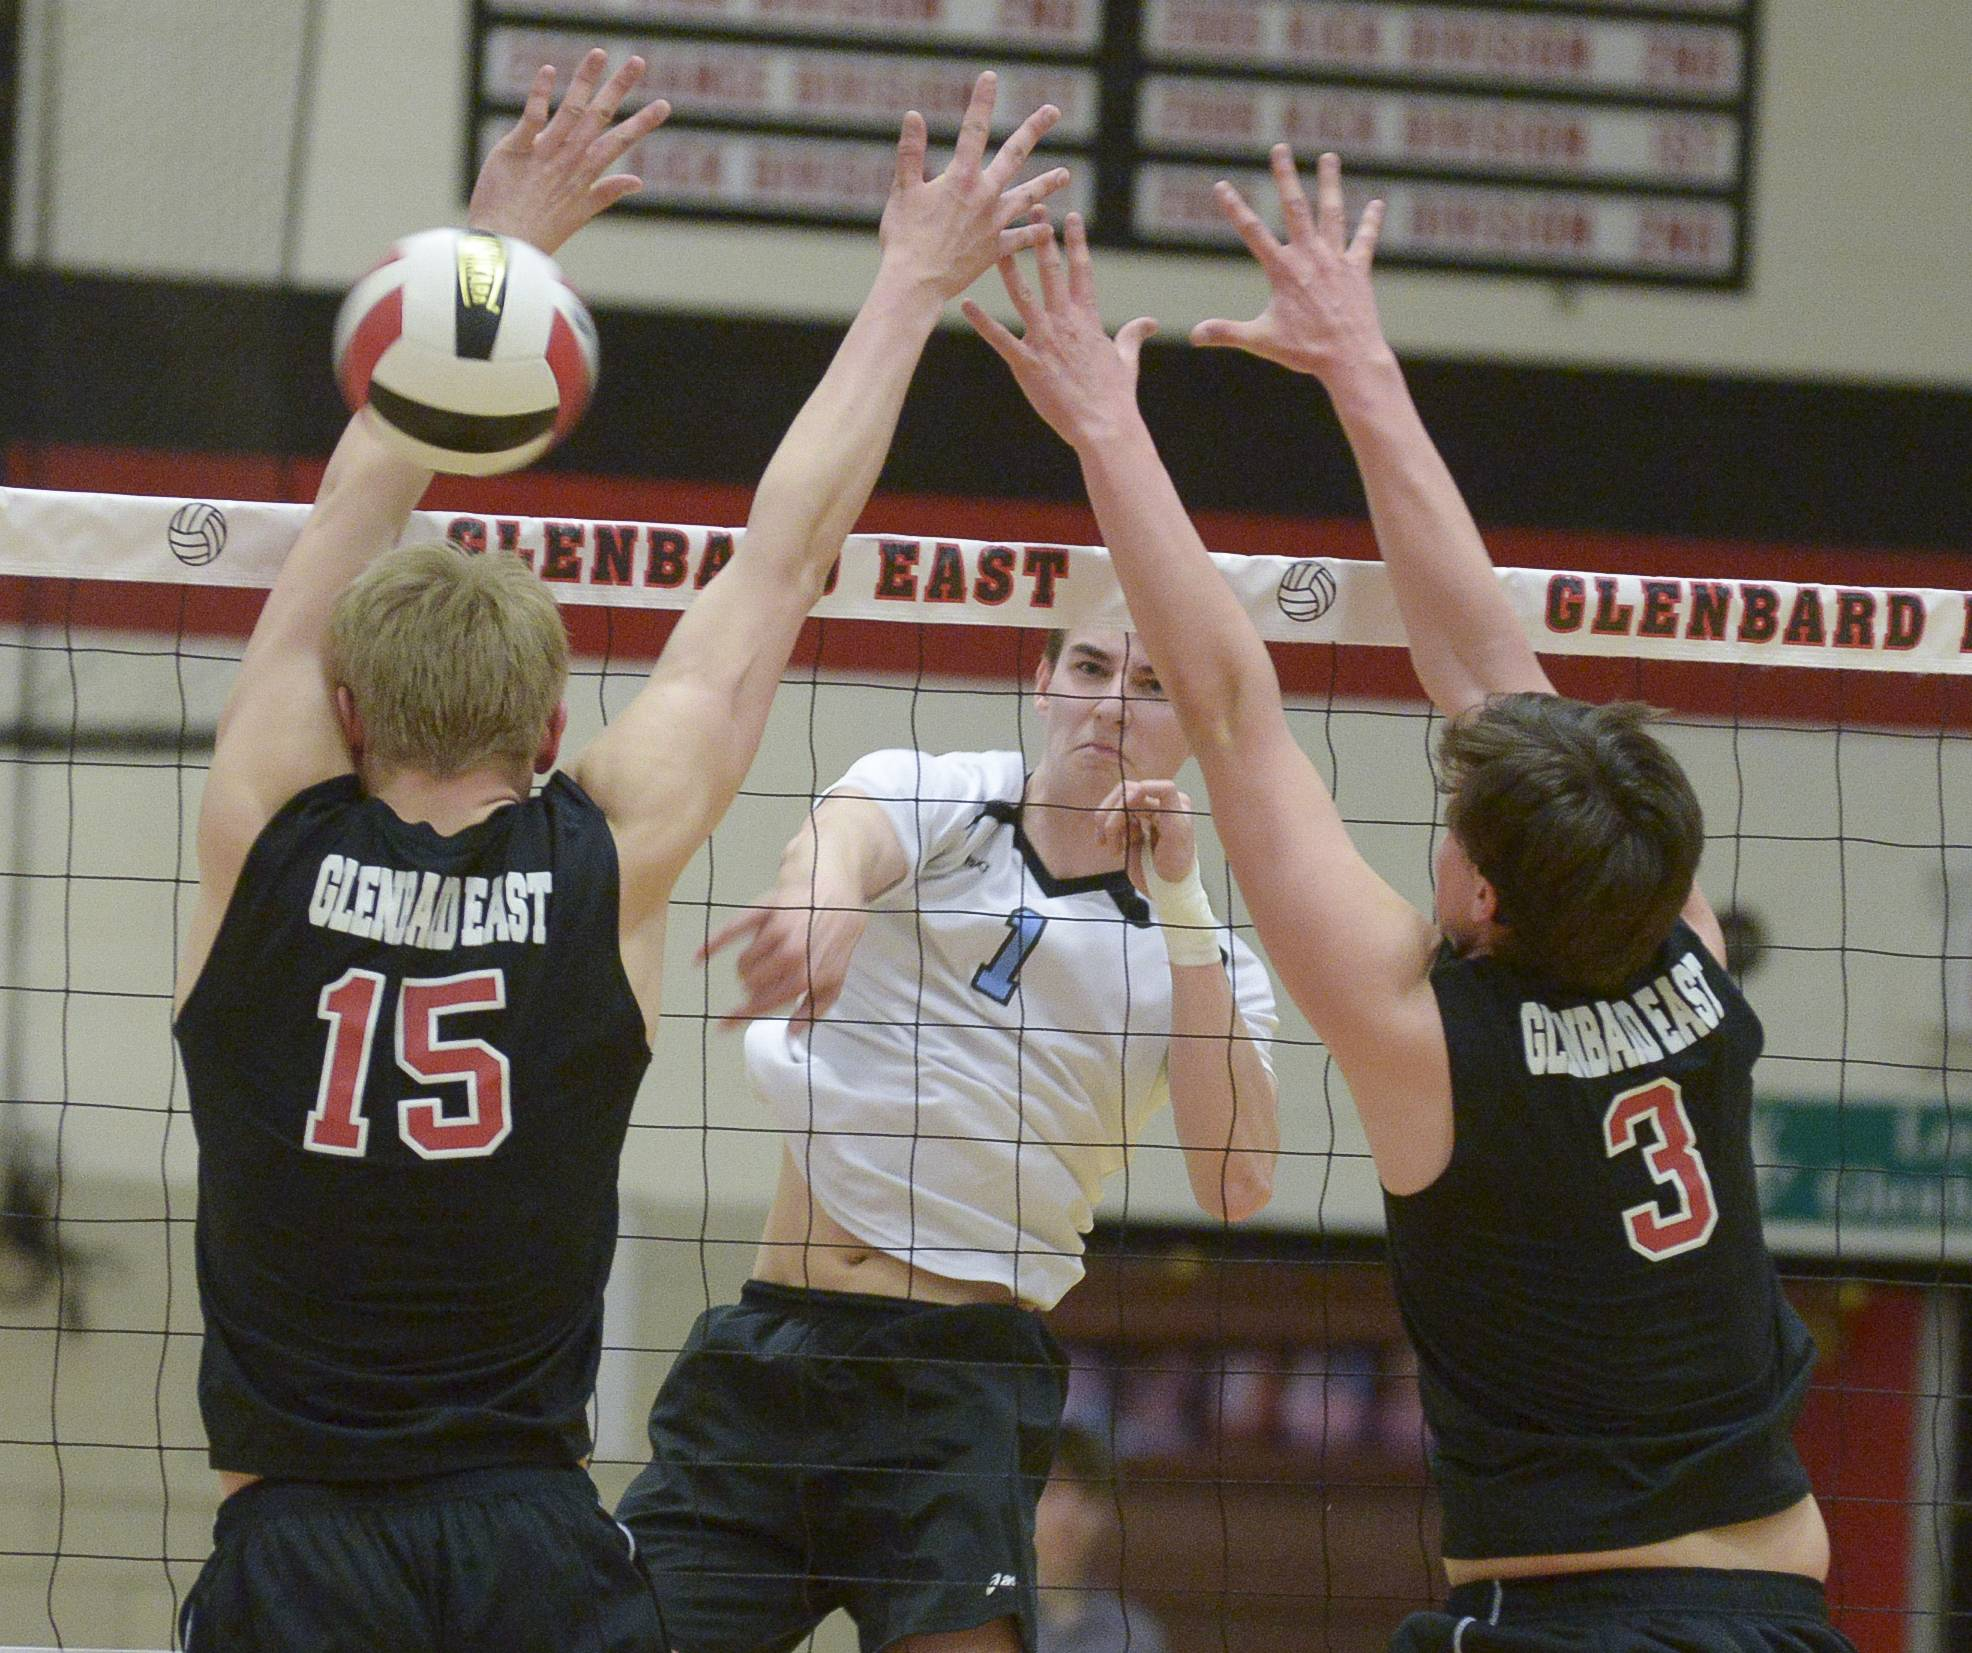 Willowbrook's Ryan Wakely fires one past Glenbard East's Erik Fiebrandt and Alex Bojan during in boys varsity volleyball in Lombard Wednesday.